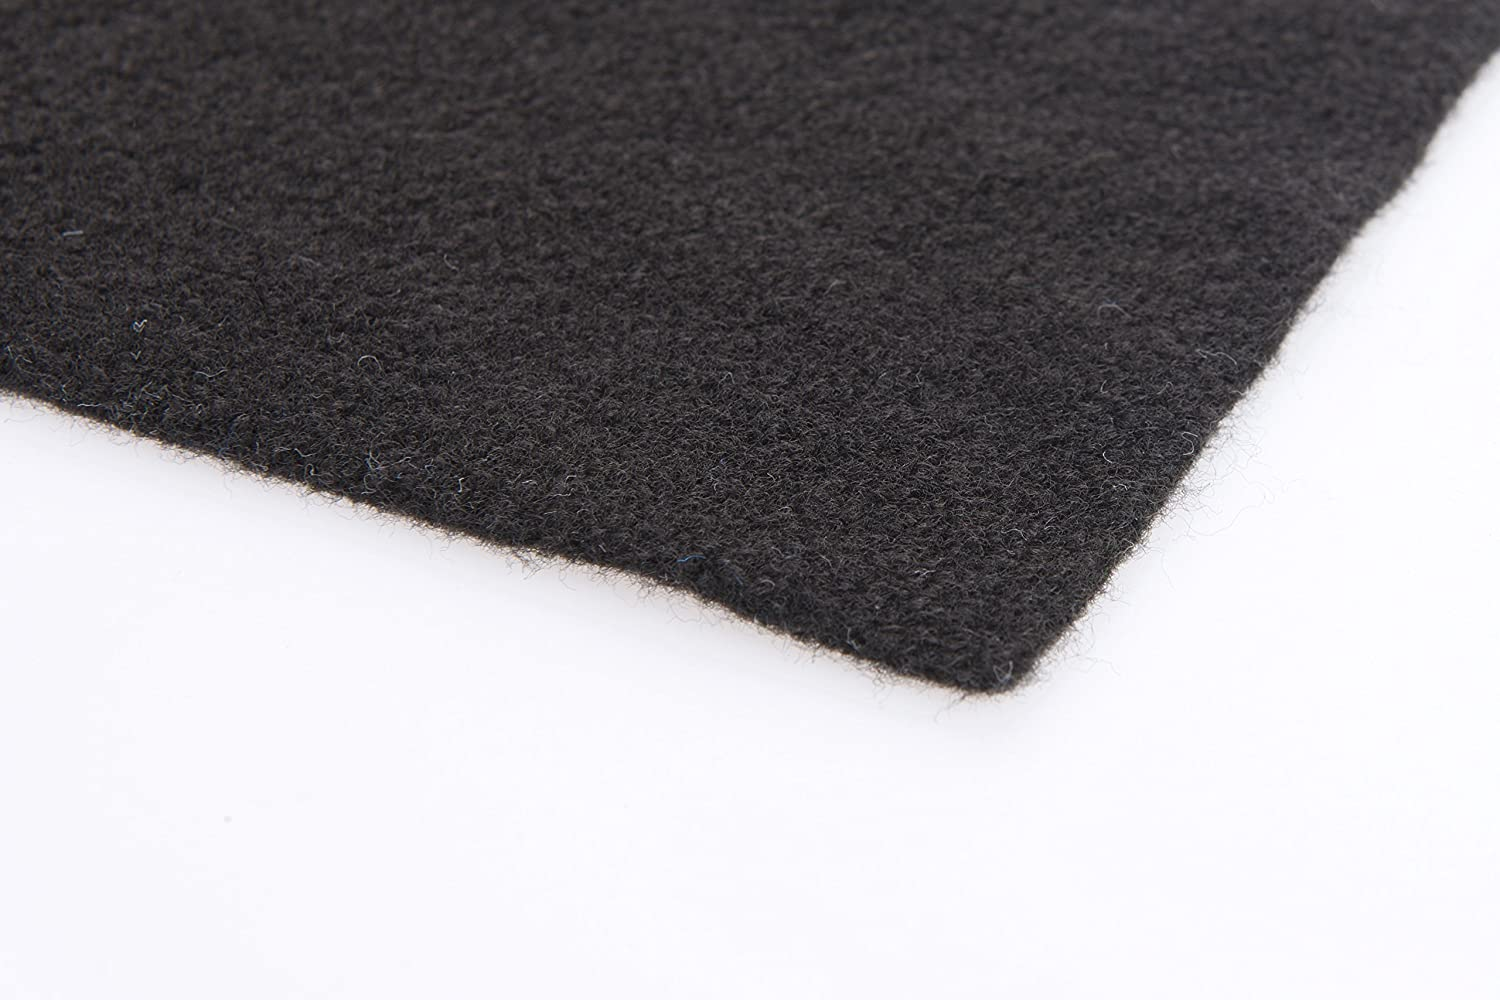 1m x 2m Black Coloured Super Stretch Van Lining Carpet Including 1 x Trimfix Glue